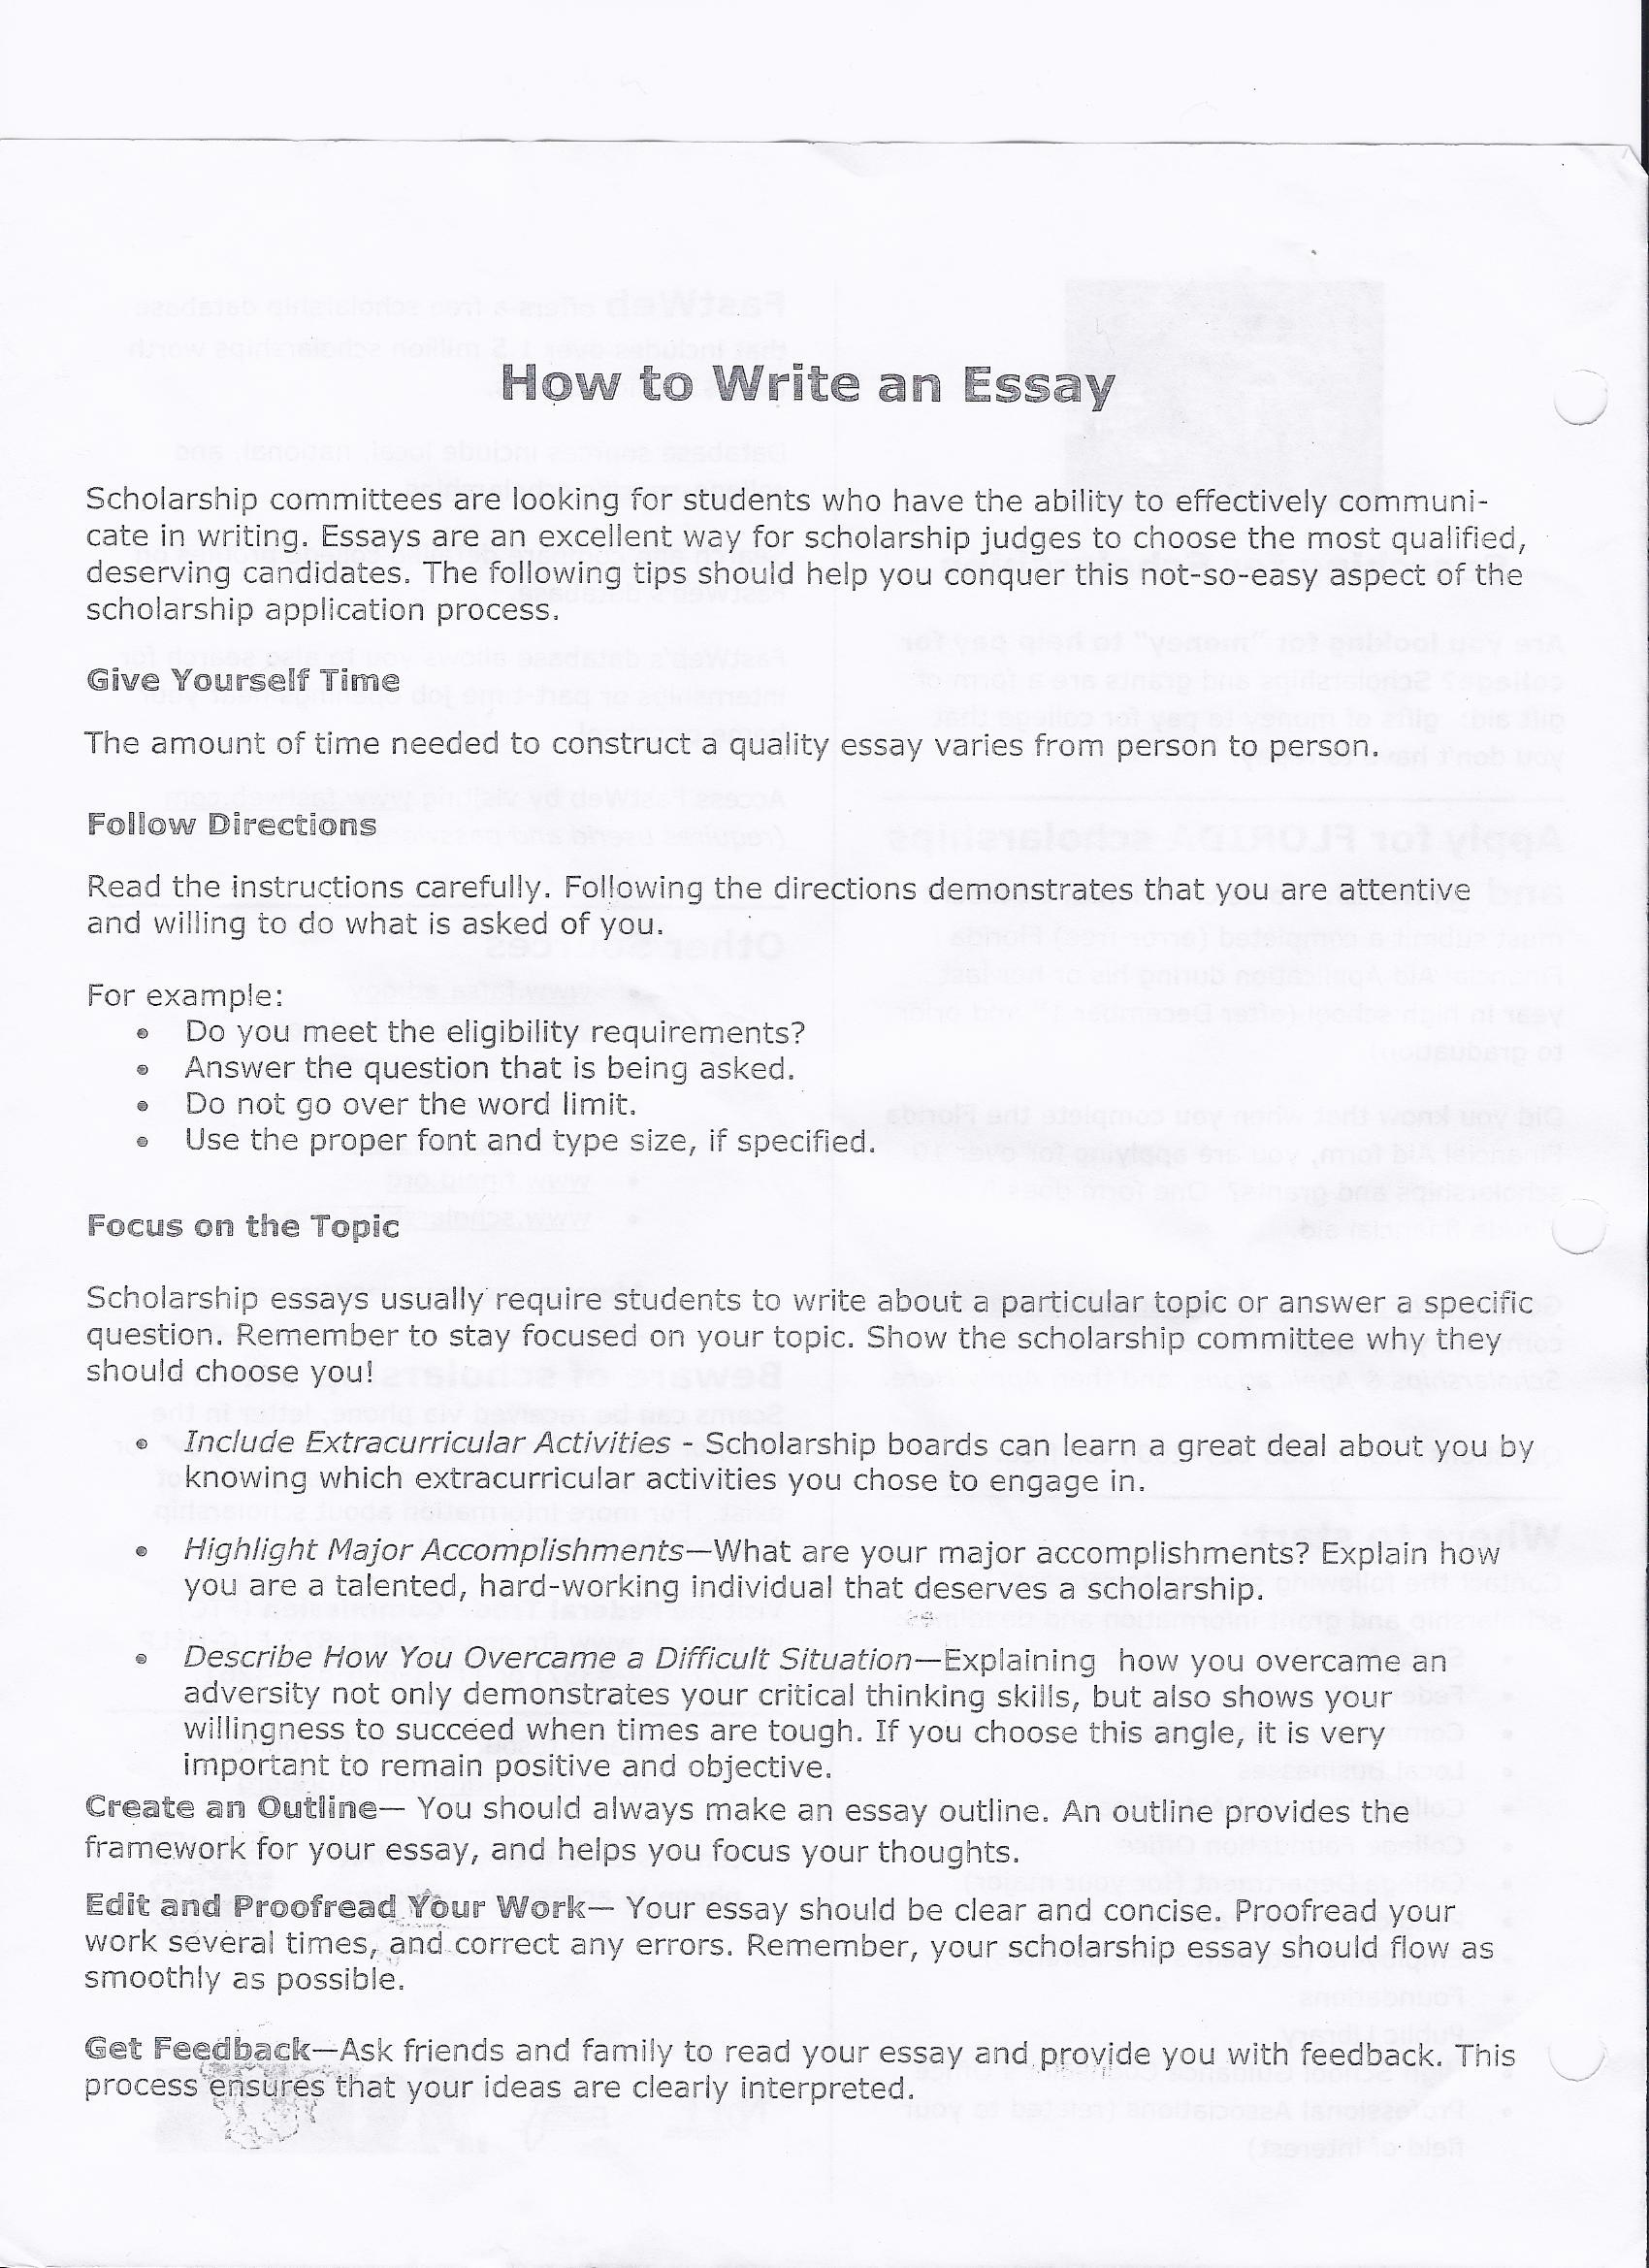 altruism essay essay on bullying essay on bullying gxart high  collage essay collage essay collage essay jonathon lay personal collage essaycollage essay buy key stage geography